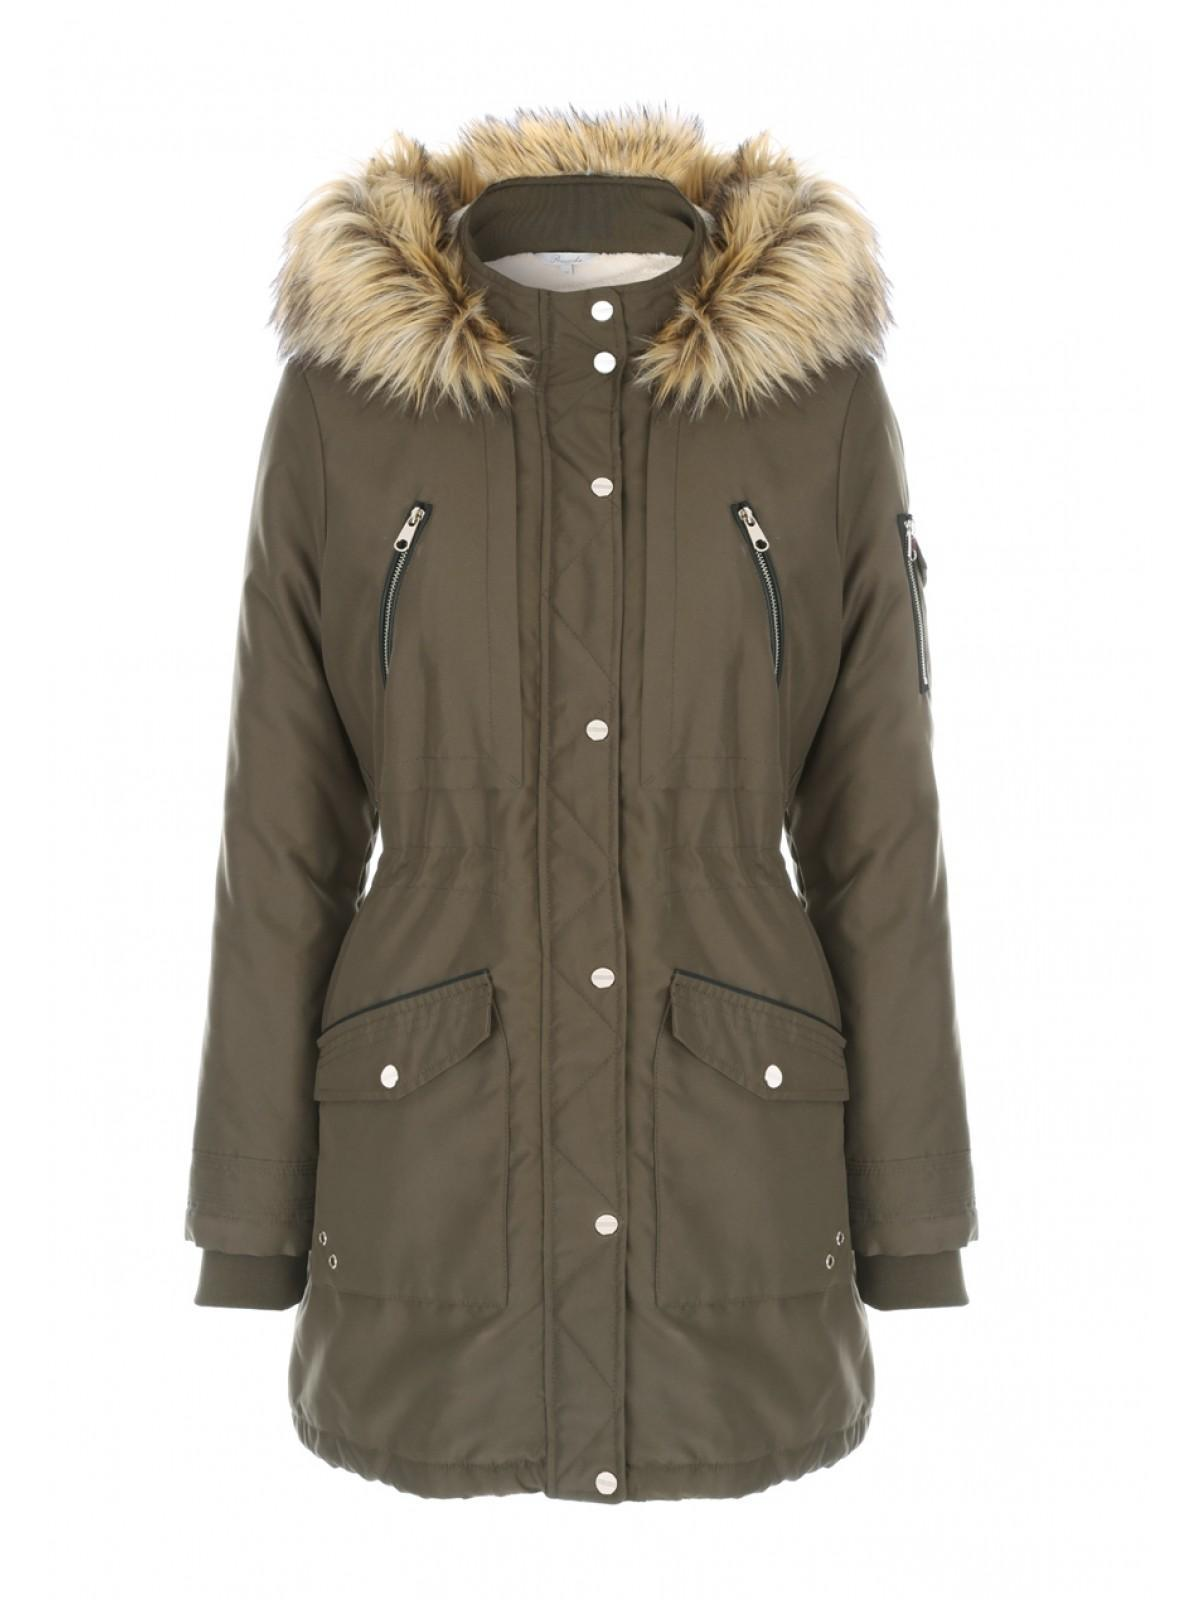 Womens Khaki Parka Coat | Peacocks